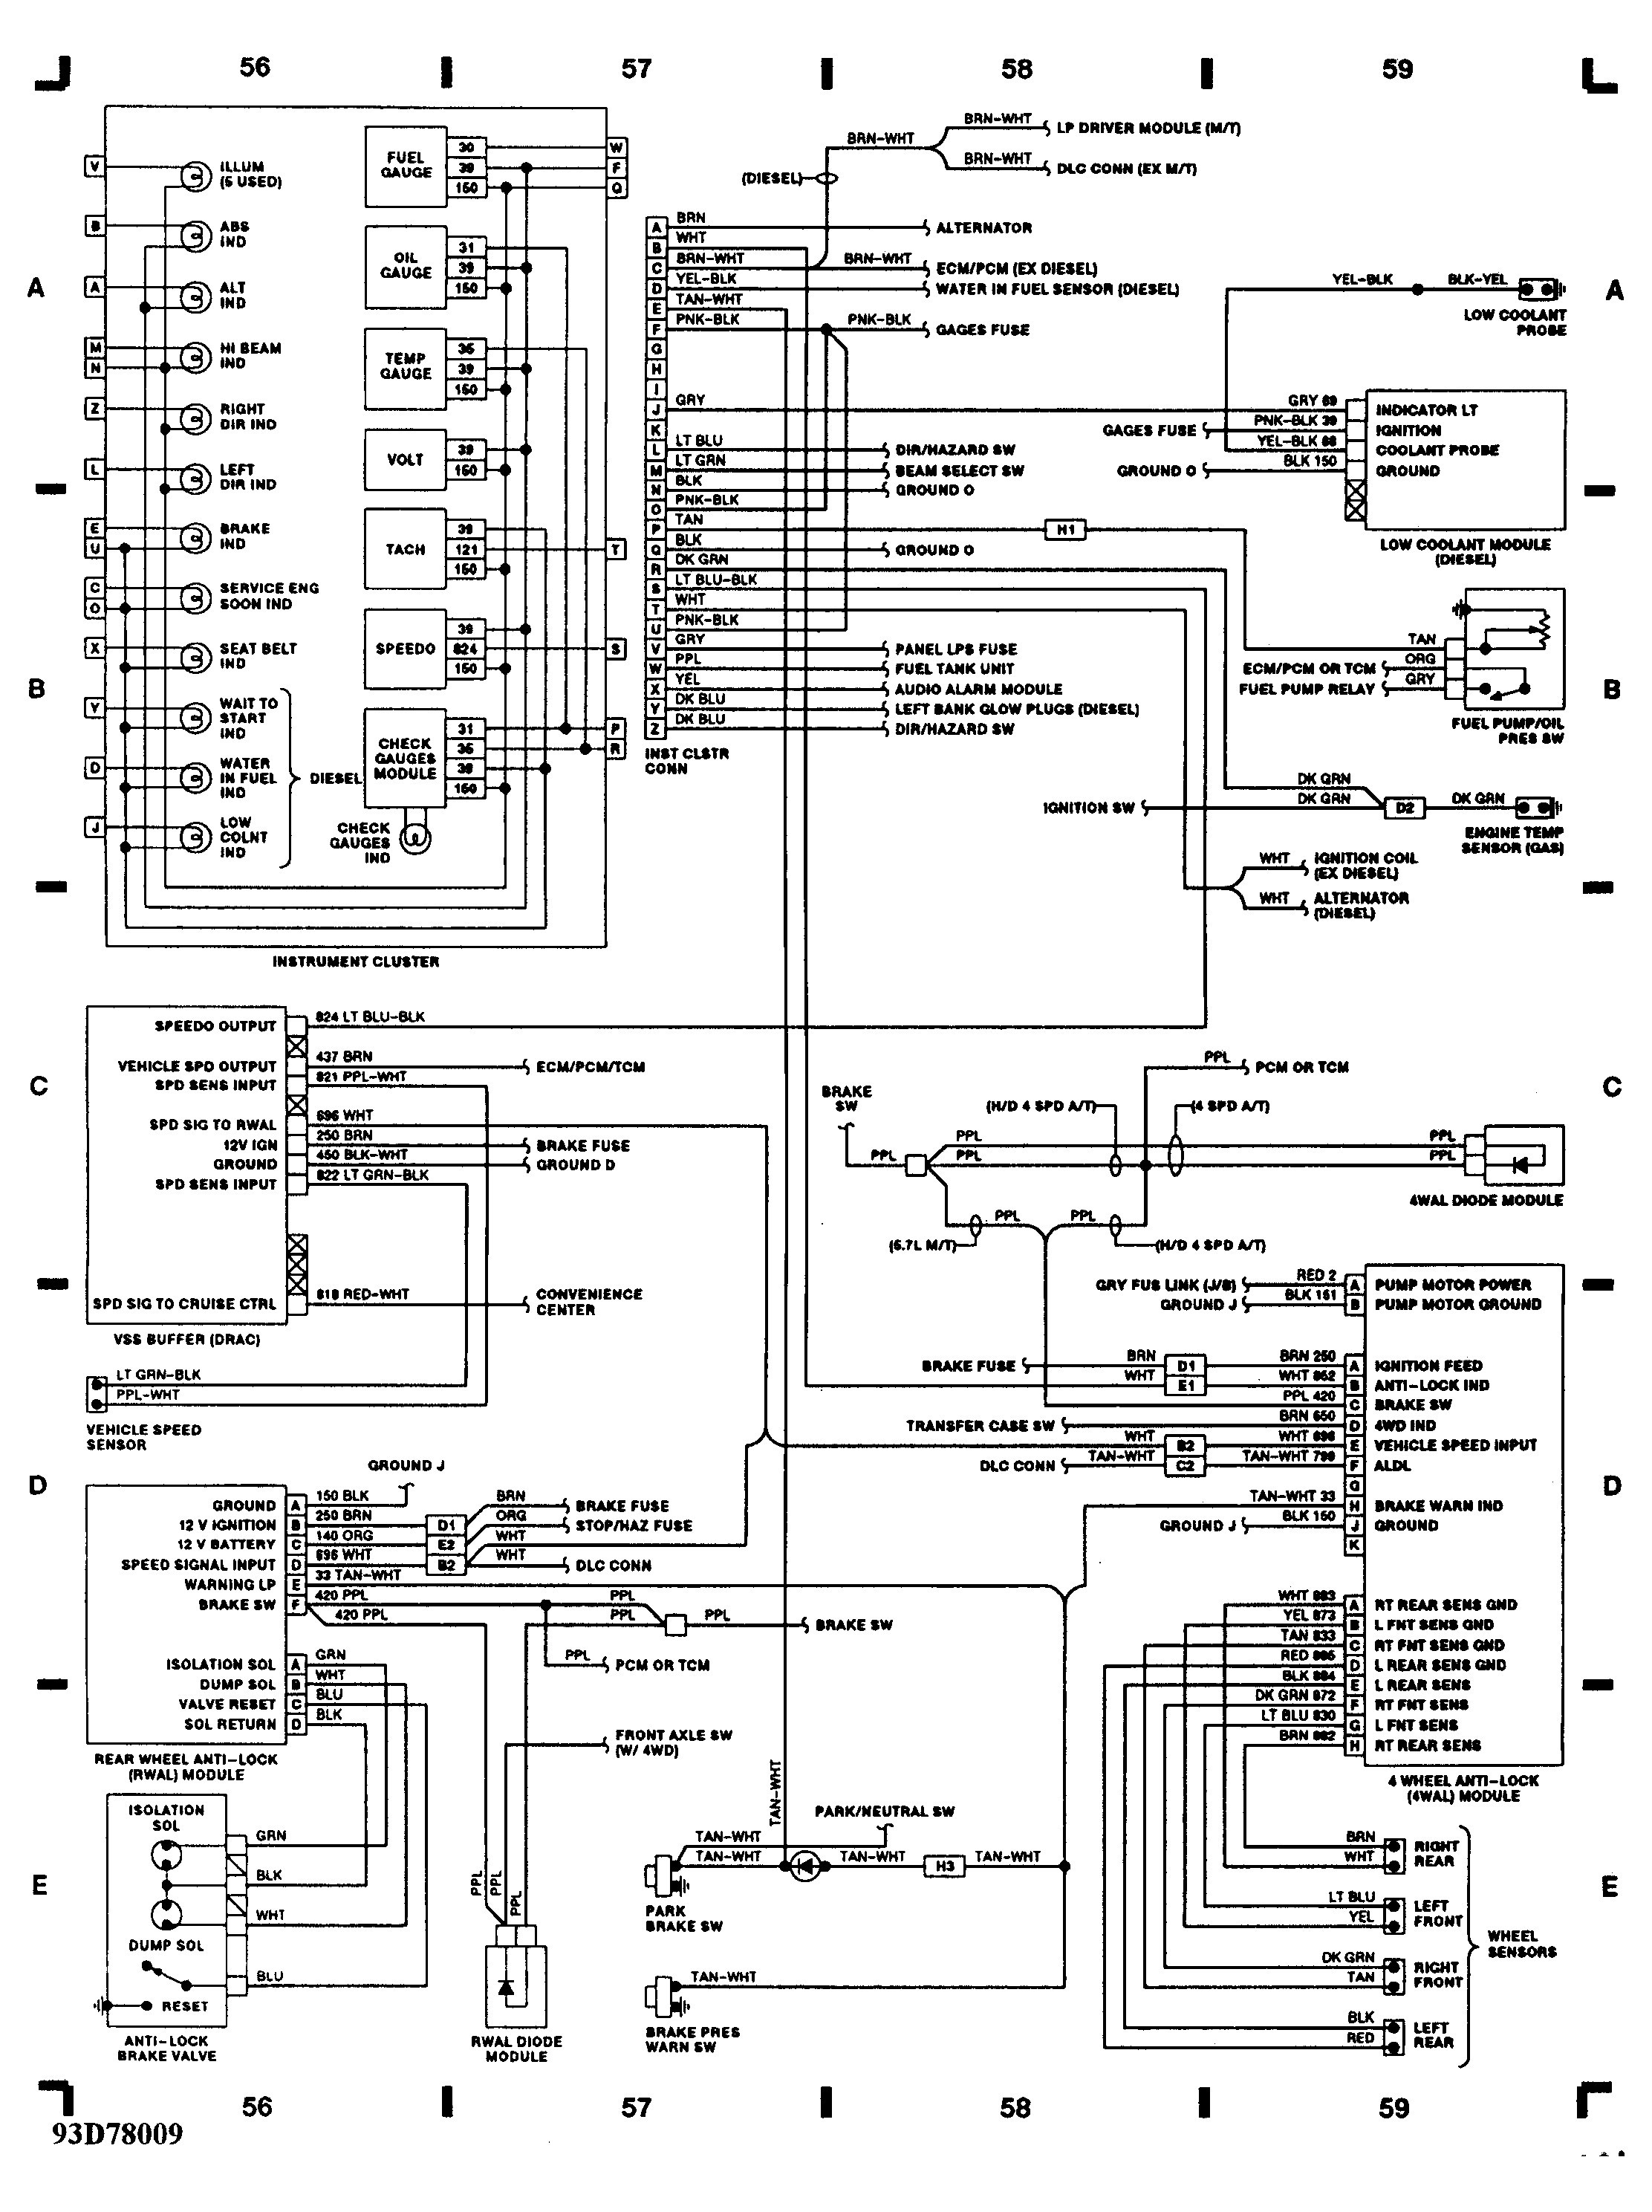 mitsubishi evolution 8 wiring diagram  u2022 wiring diagram for